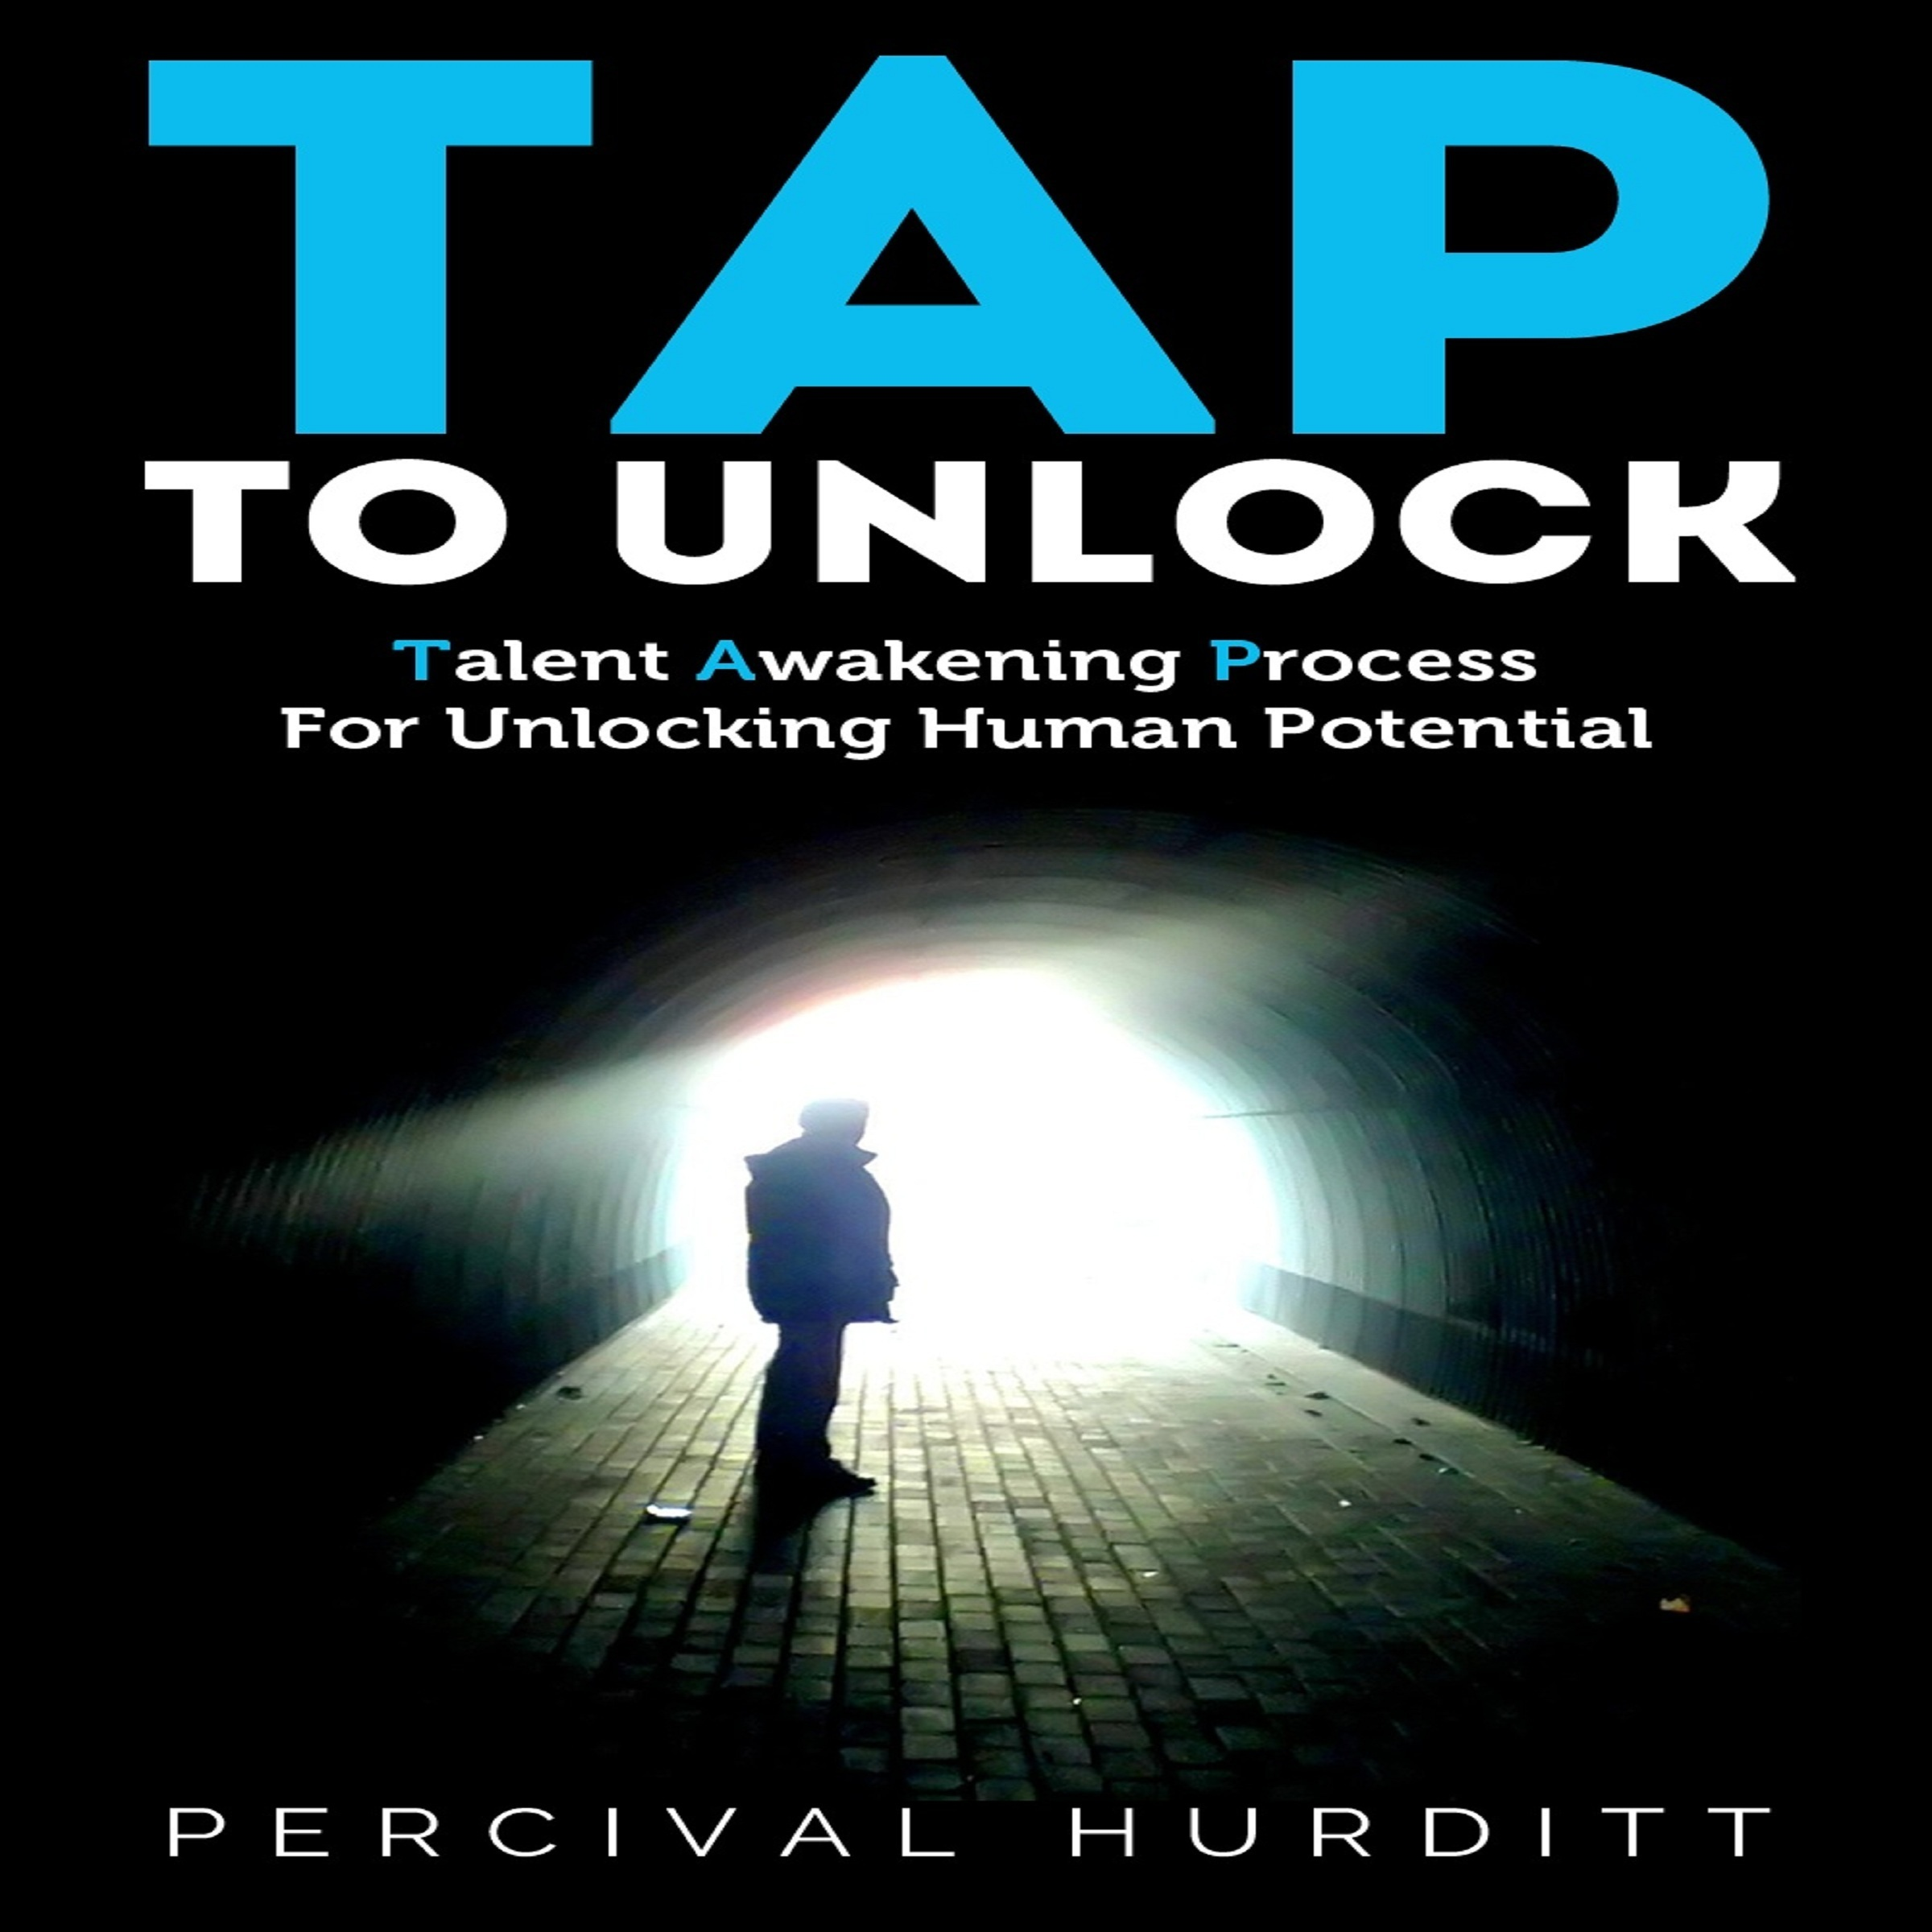 Printable Tap to Unlock: Talent Awakening Process For Unlocking Human Potential Audiobook Cover Art